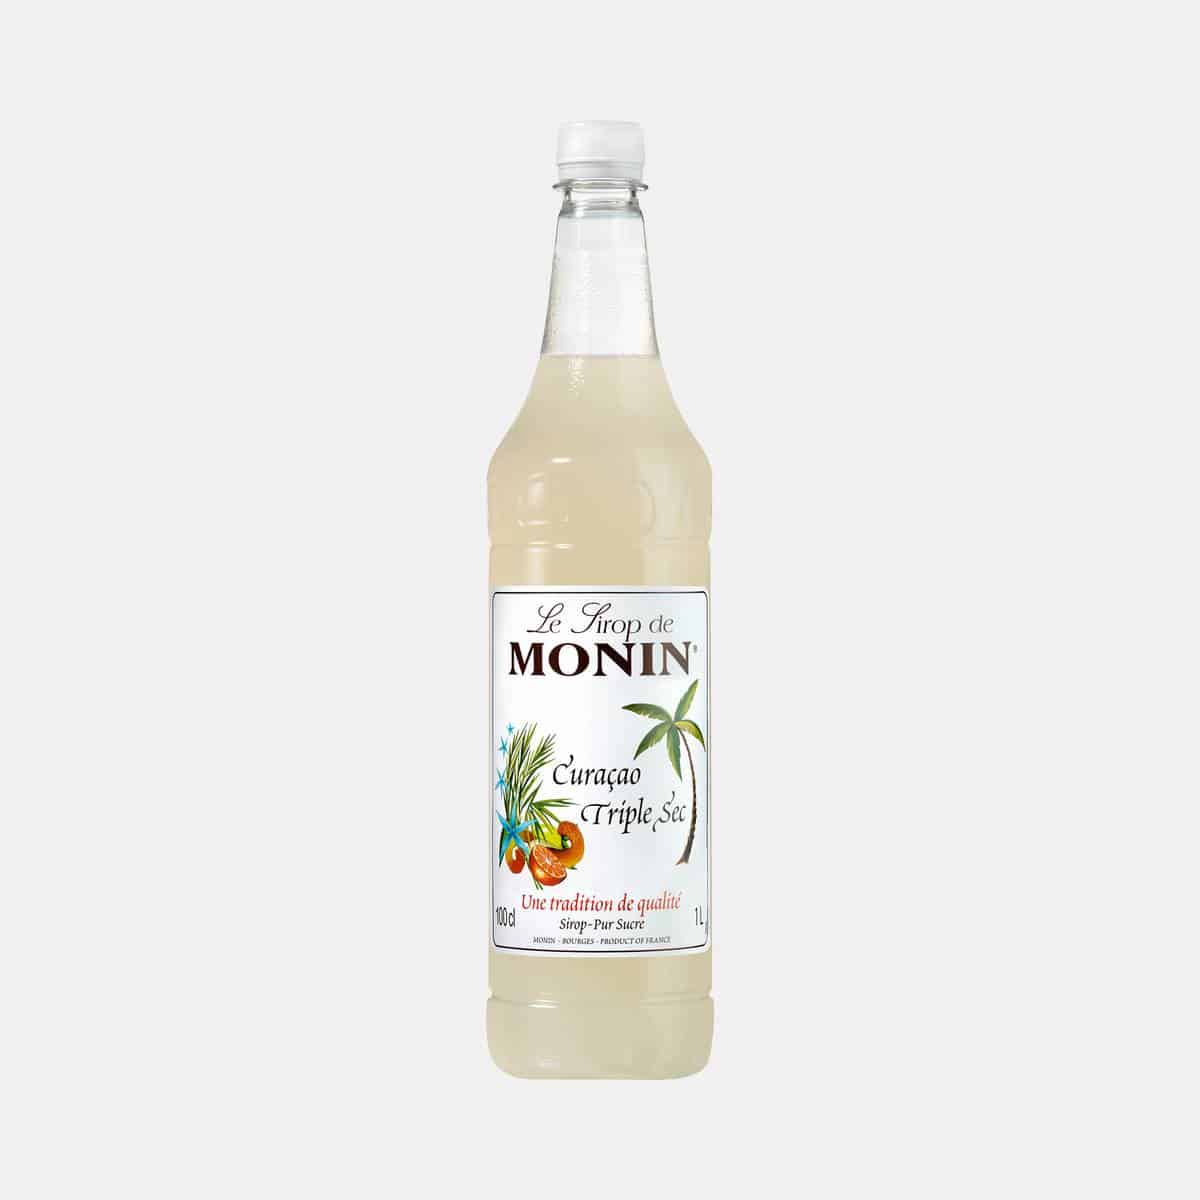 Monin Curaçao Triple Sec Syrup 1 Liter PET Bottle